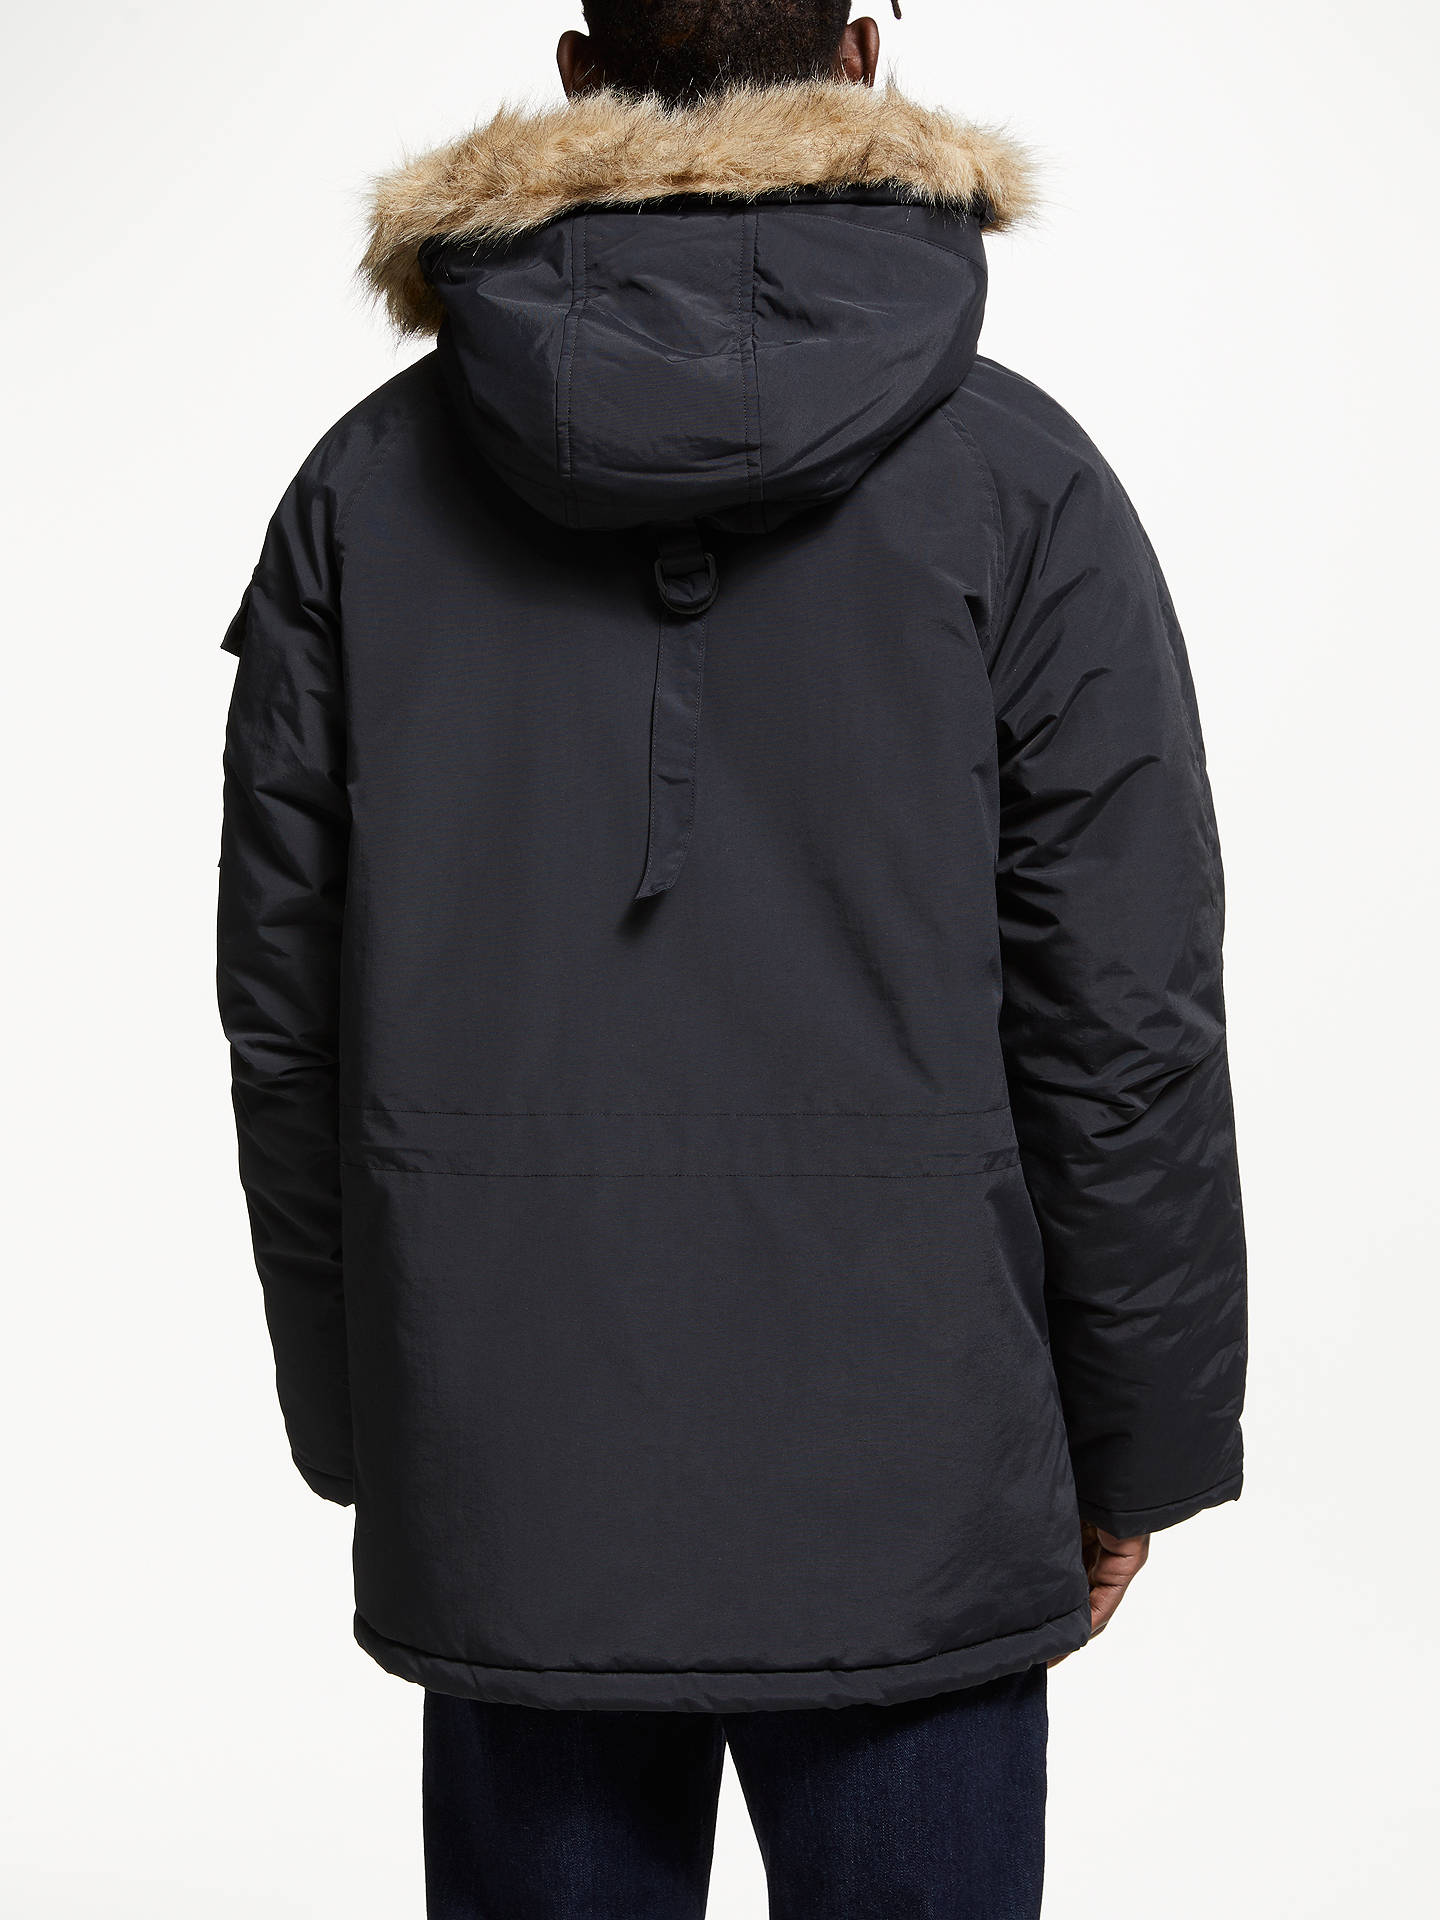 Buy Carhartt WIP Anchor Parka Coat, Black, XL Online at johnlewis.com